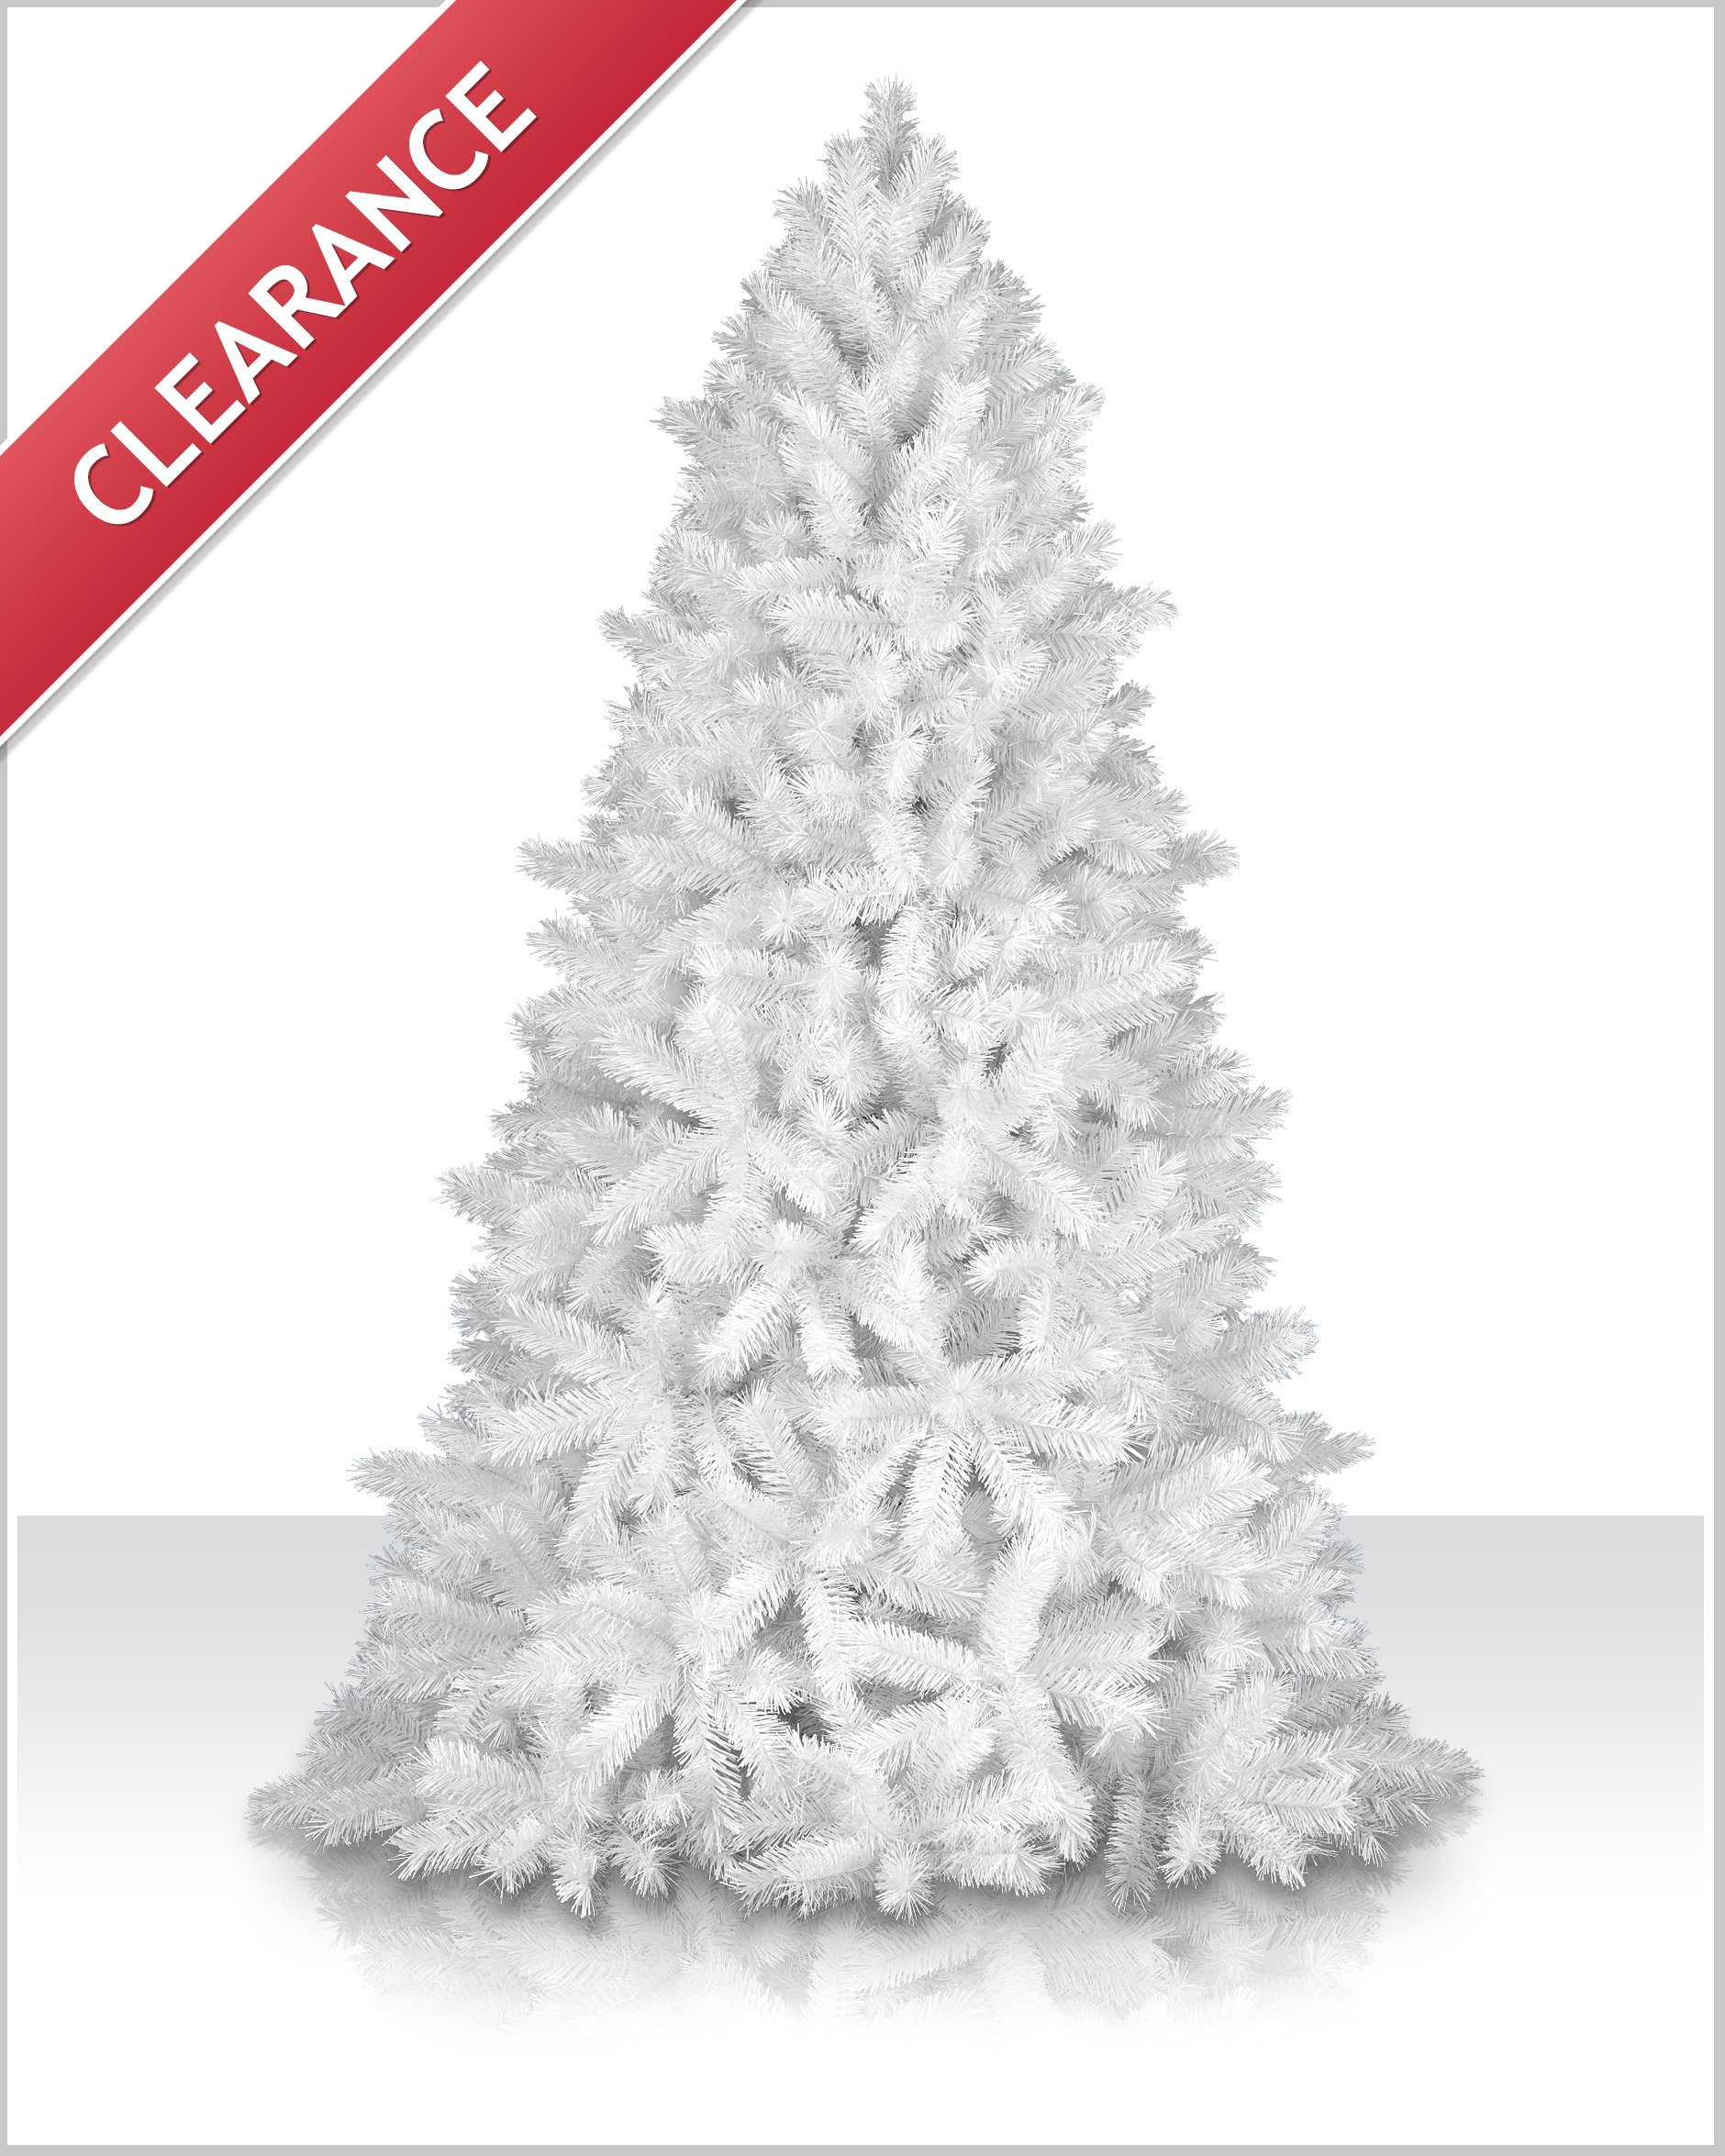 7 foot unlit shimmering white christmas tree - 2 Foot Christmas Tree